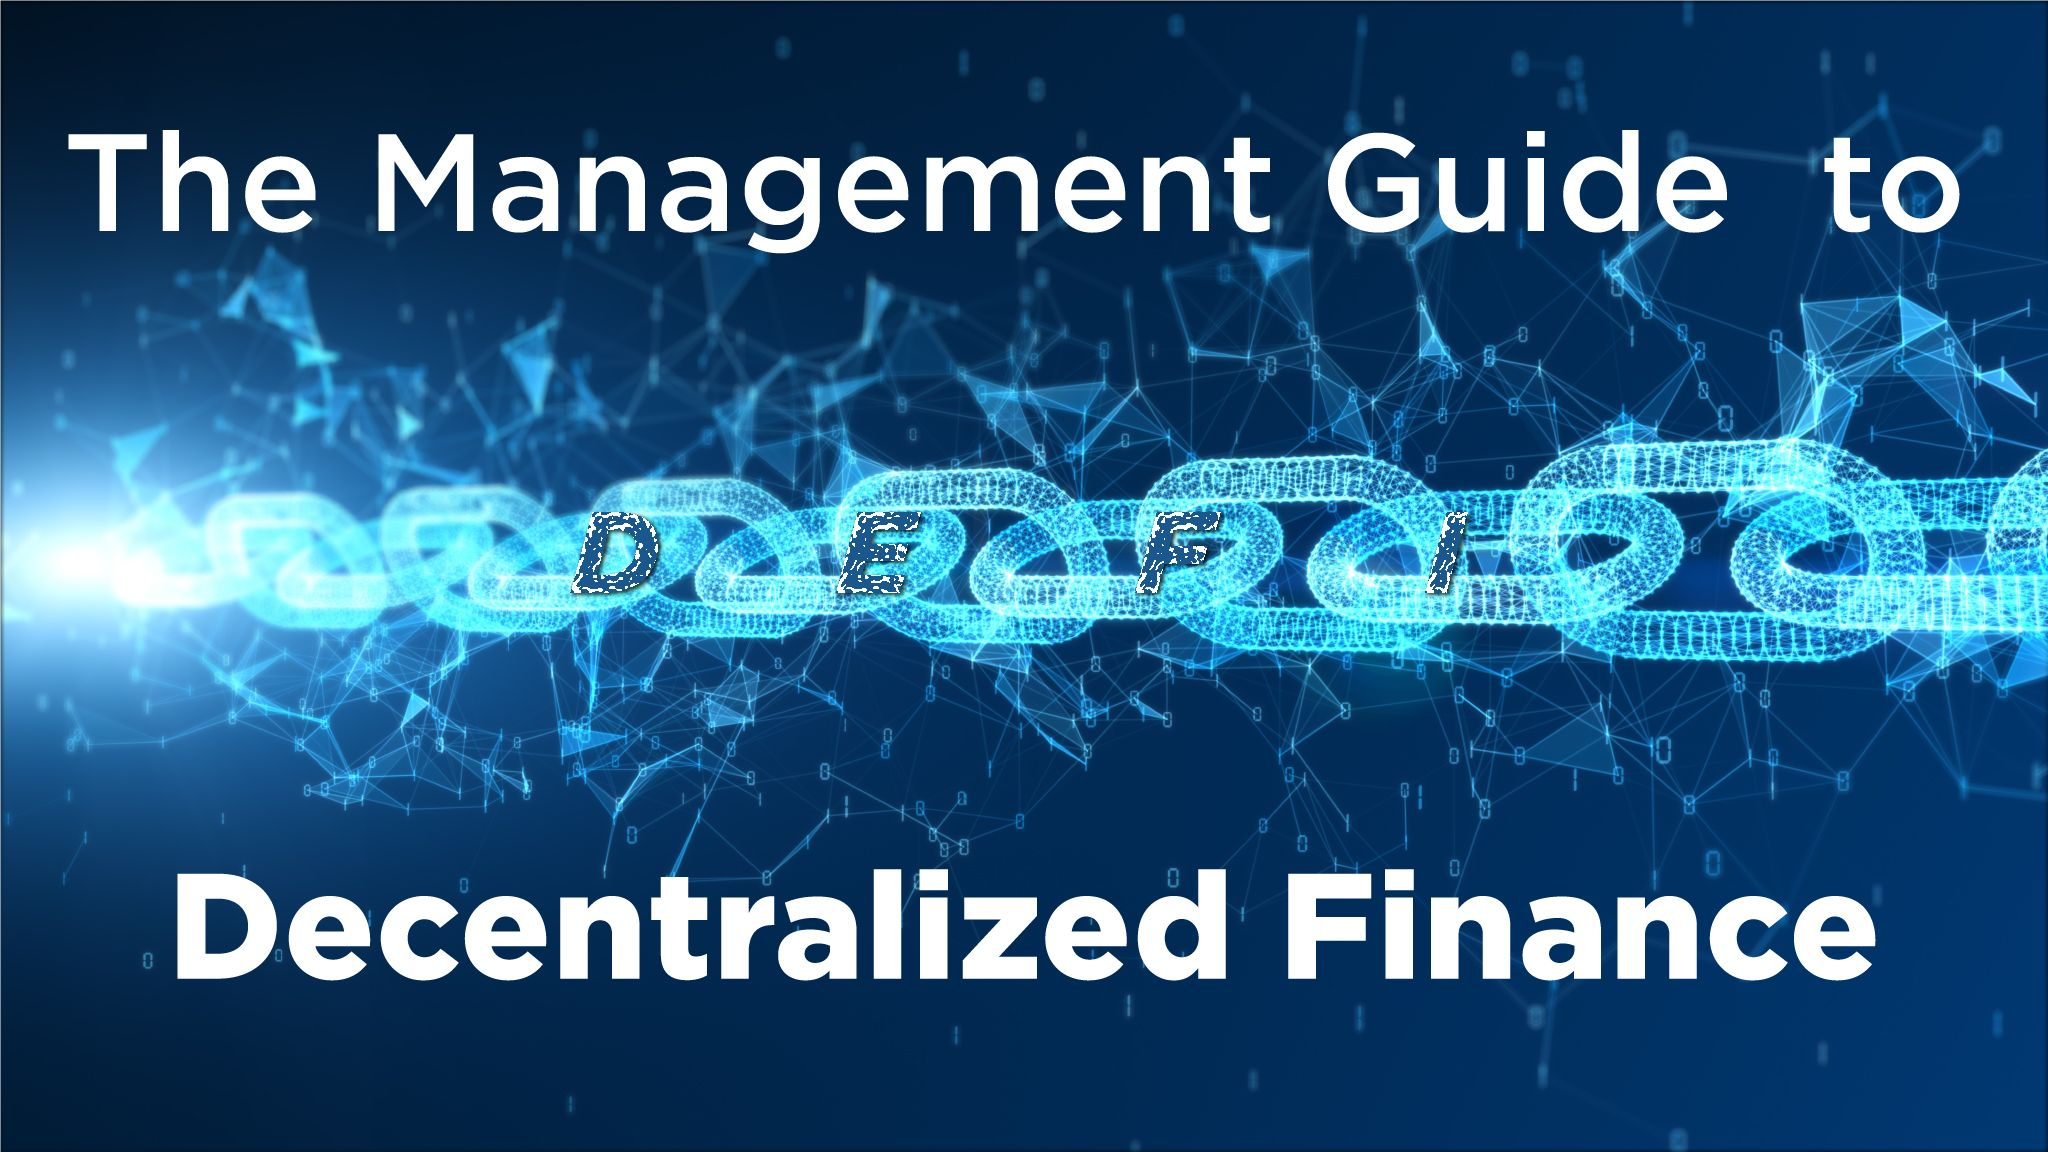 The Management Guide to Decentralized Finance (DeFi)